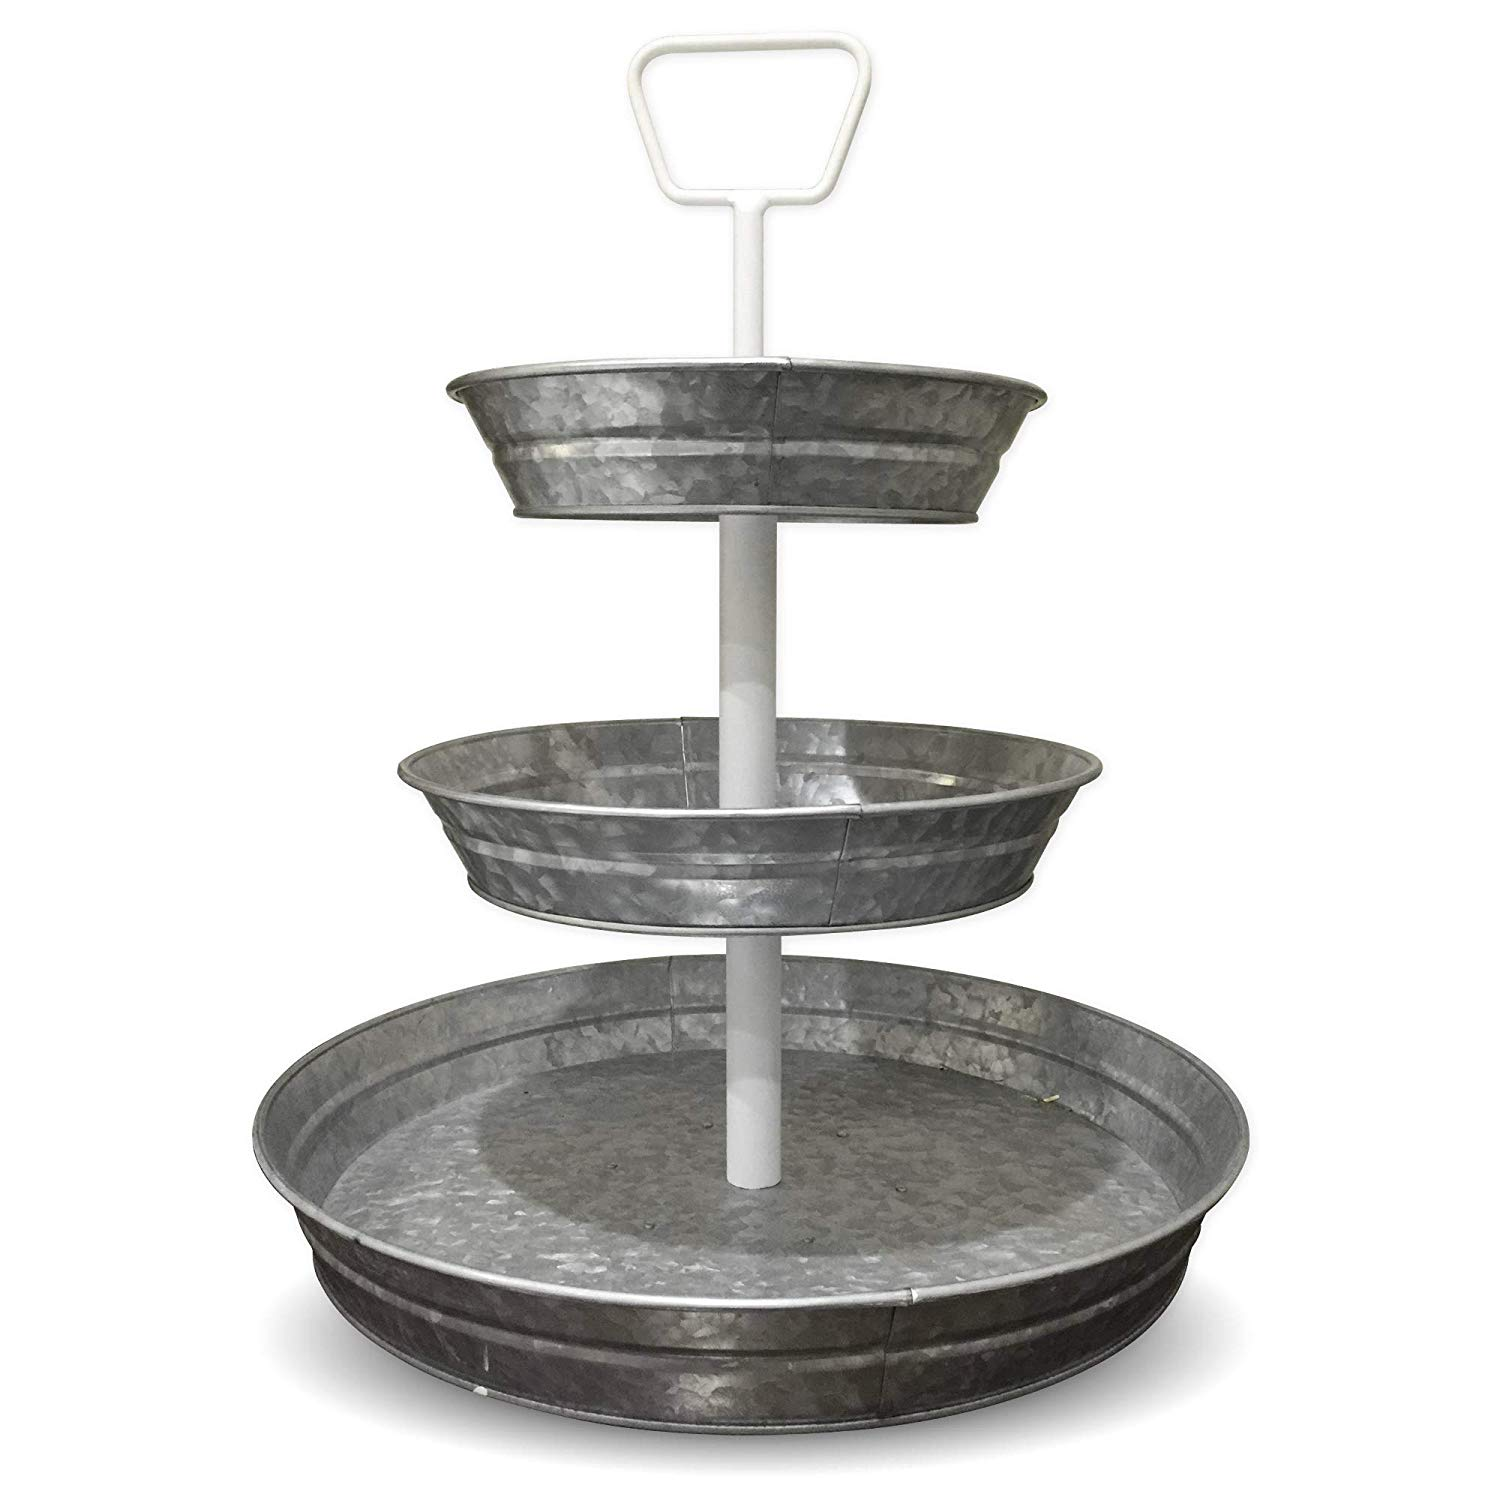 curly willow home accents tier galvanized round metal accent table serving trays with white handle narrow shelf behind couch antique black coffee hobby lobby mirrors carpet